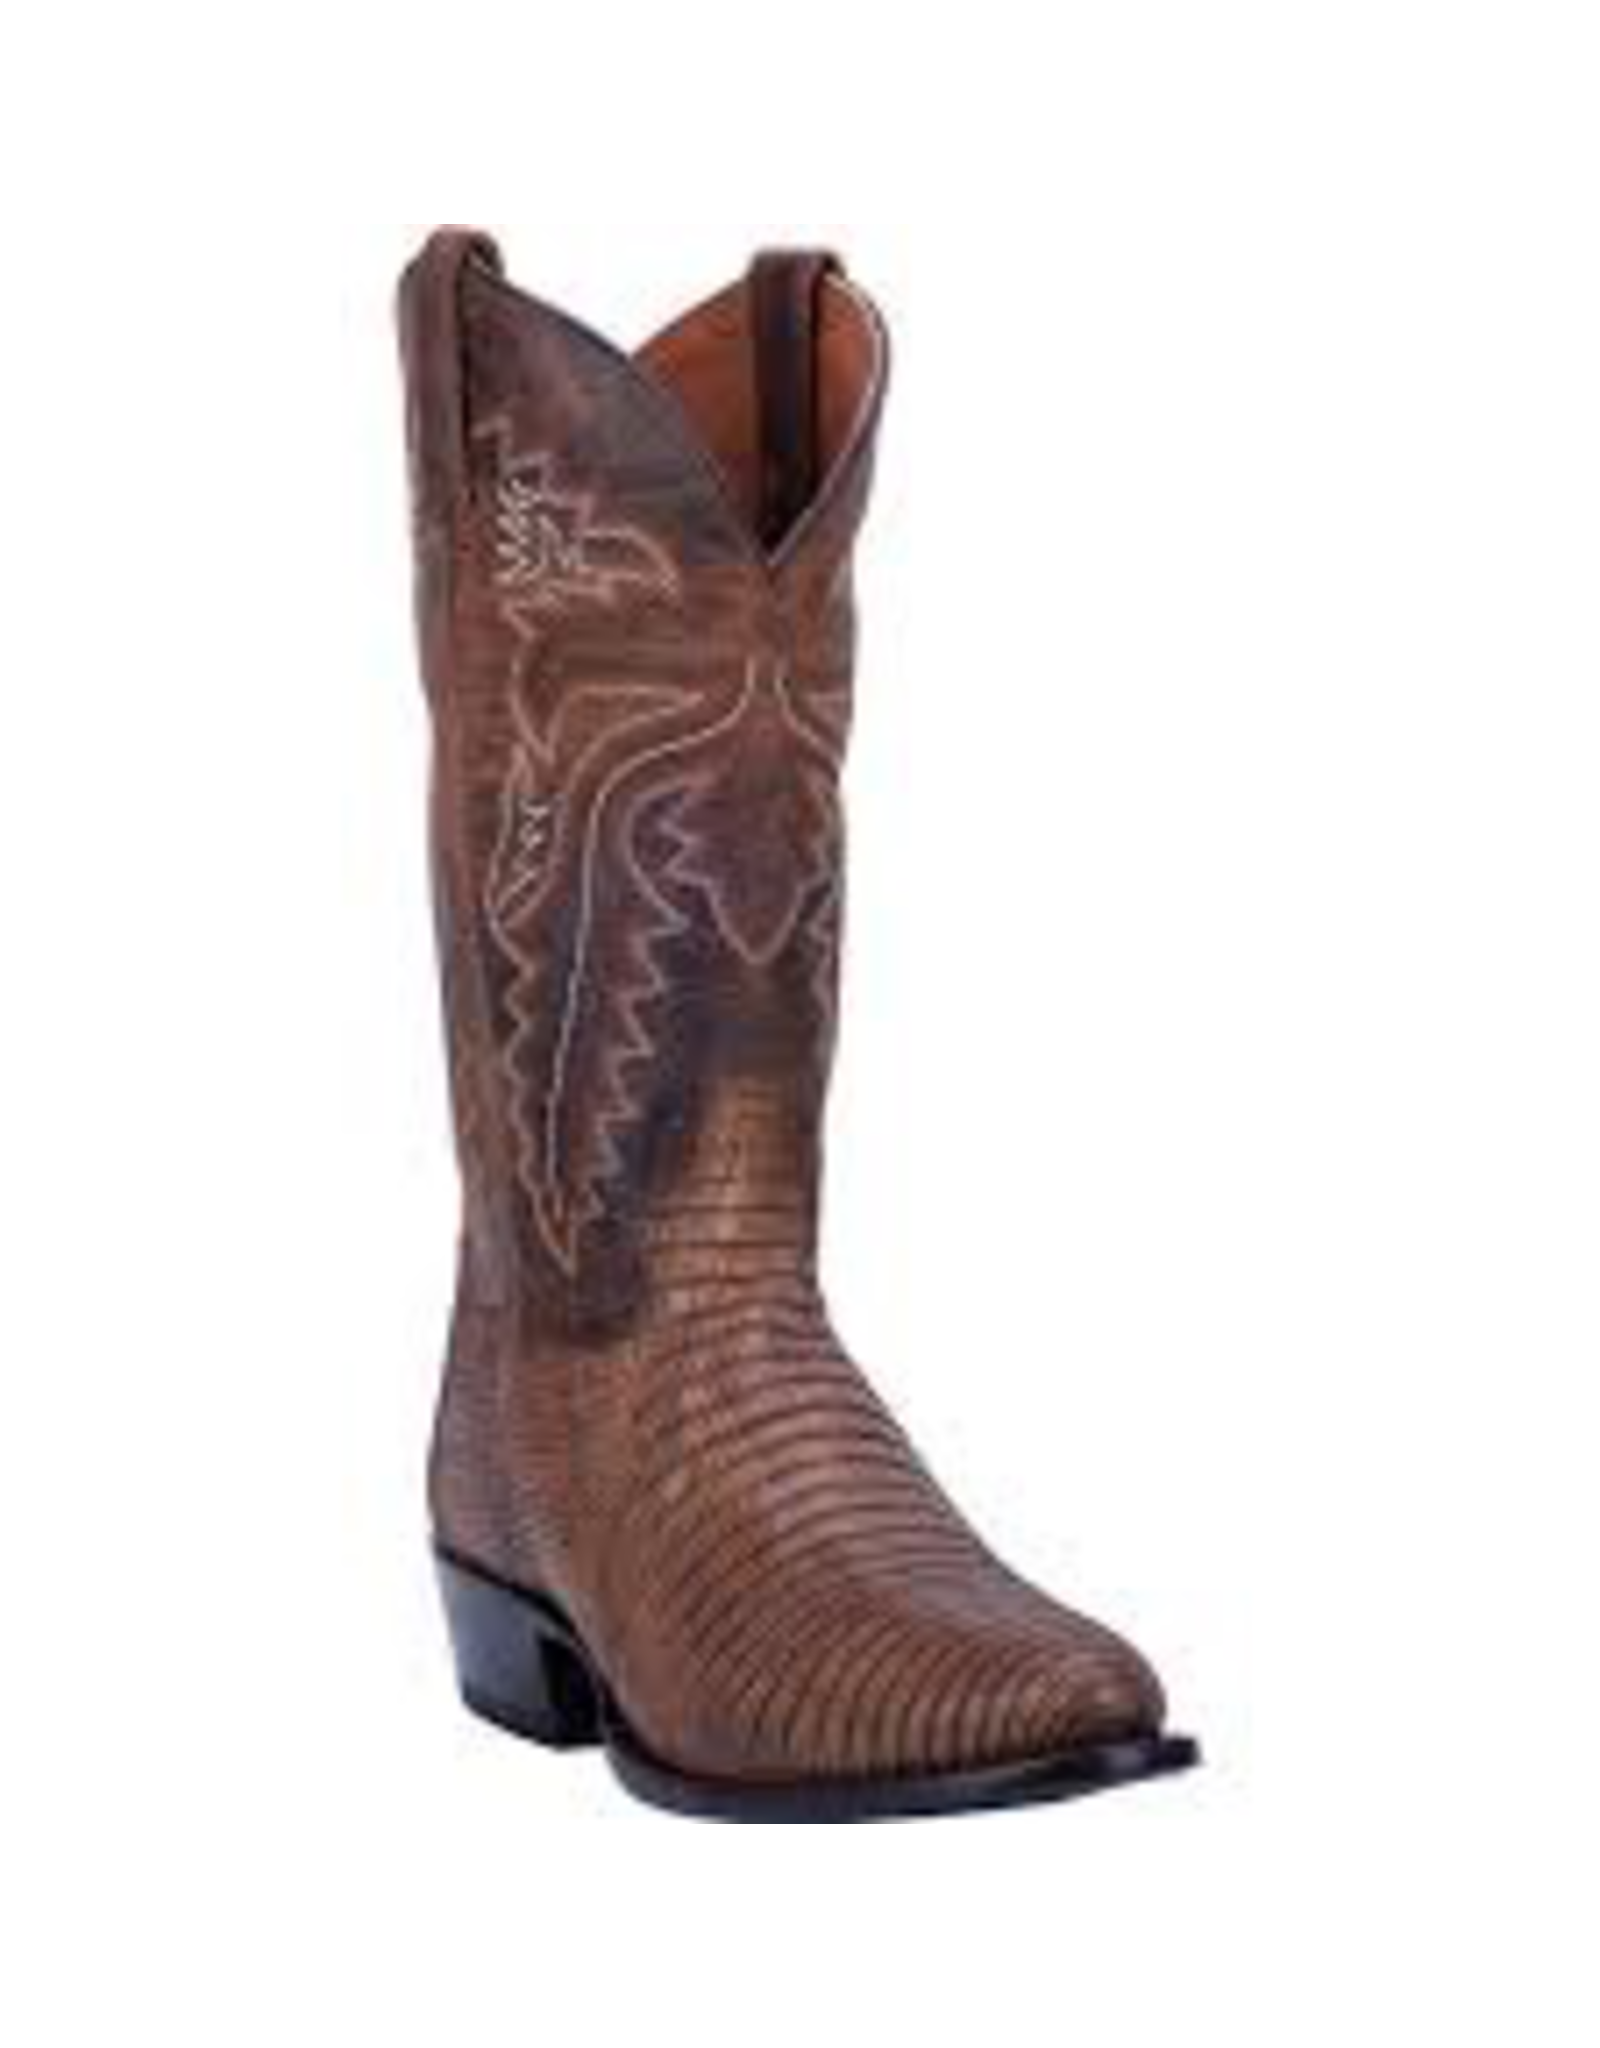 Boots-Men Dan Post Winston Teju Lizard DP3054